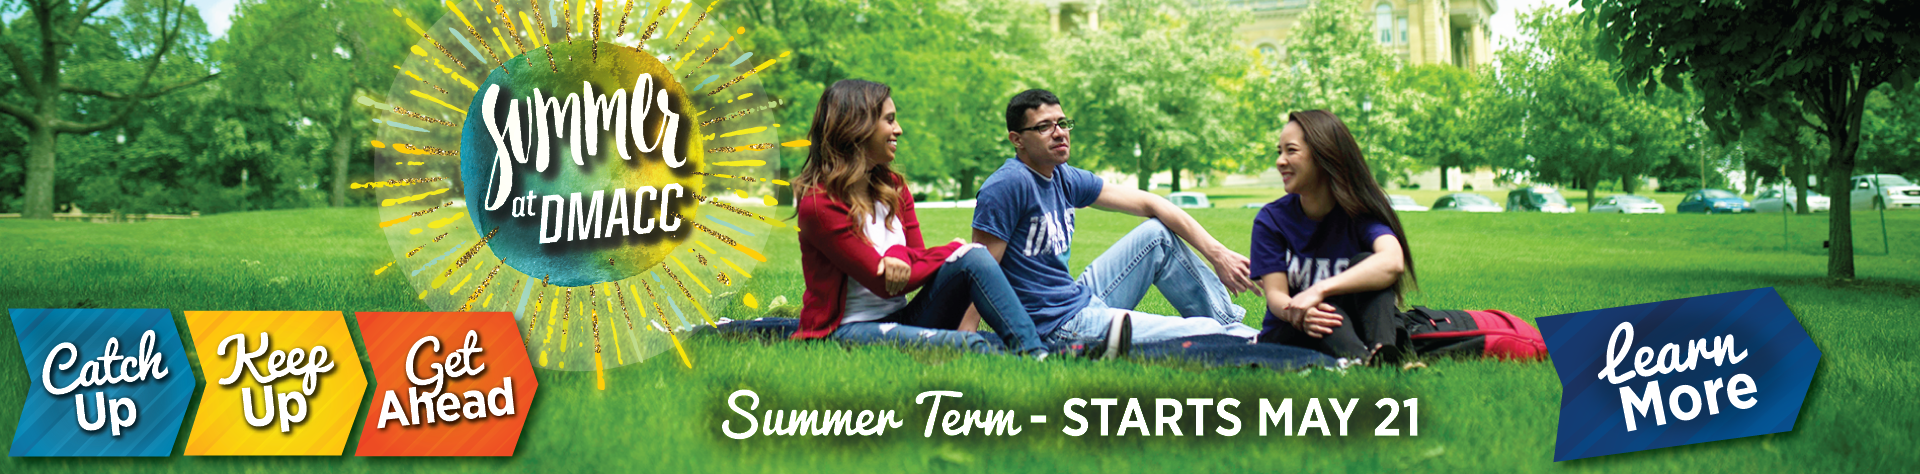 Summer Term Starts May 21 - Learn More